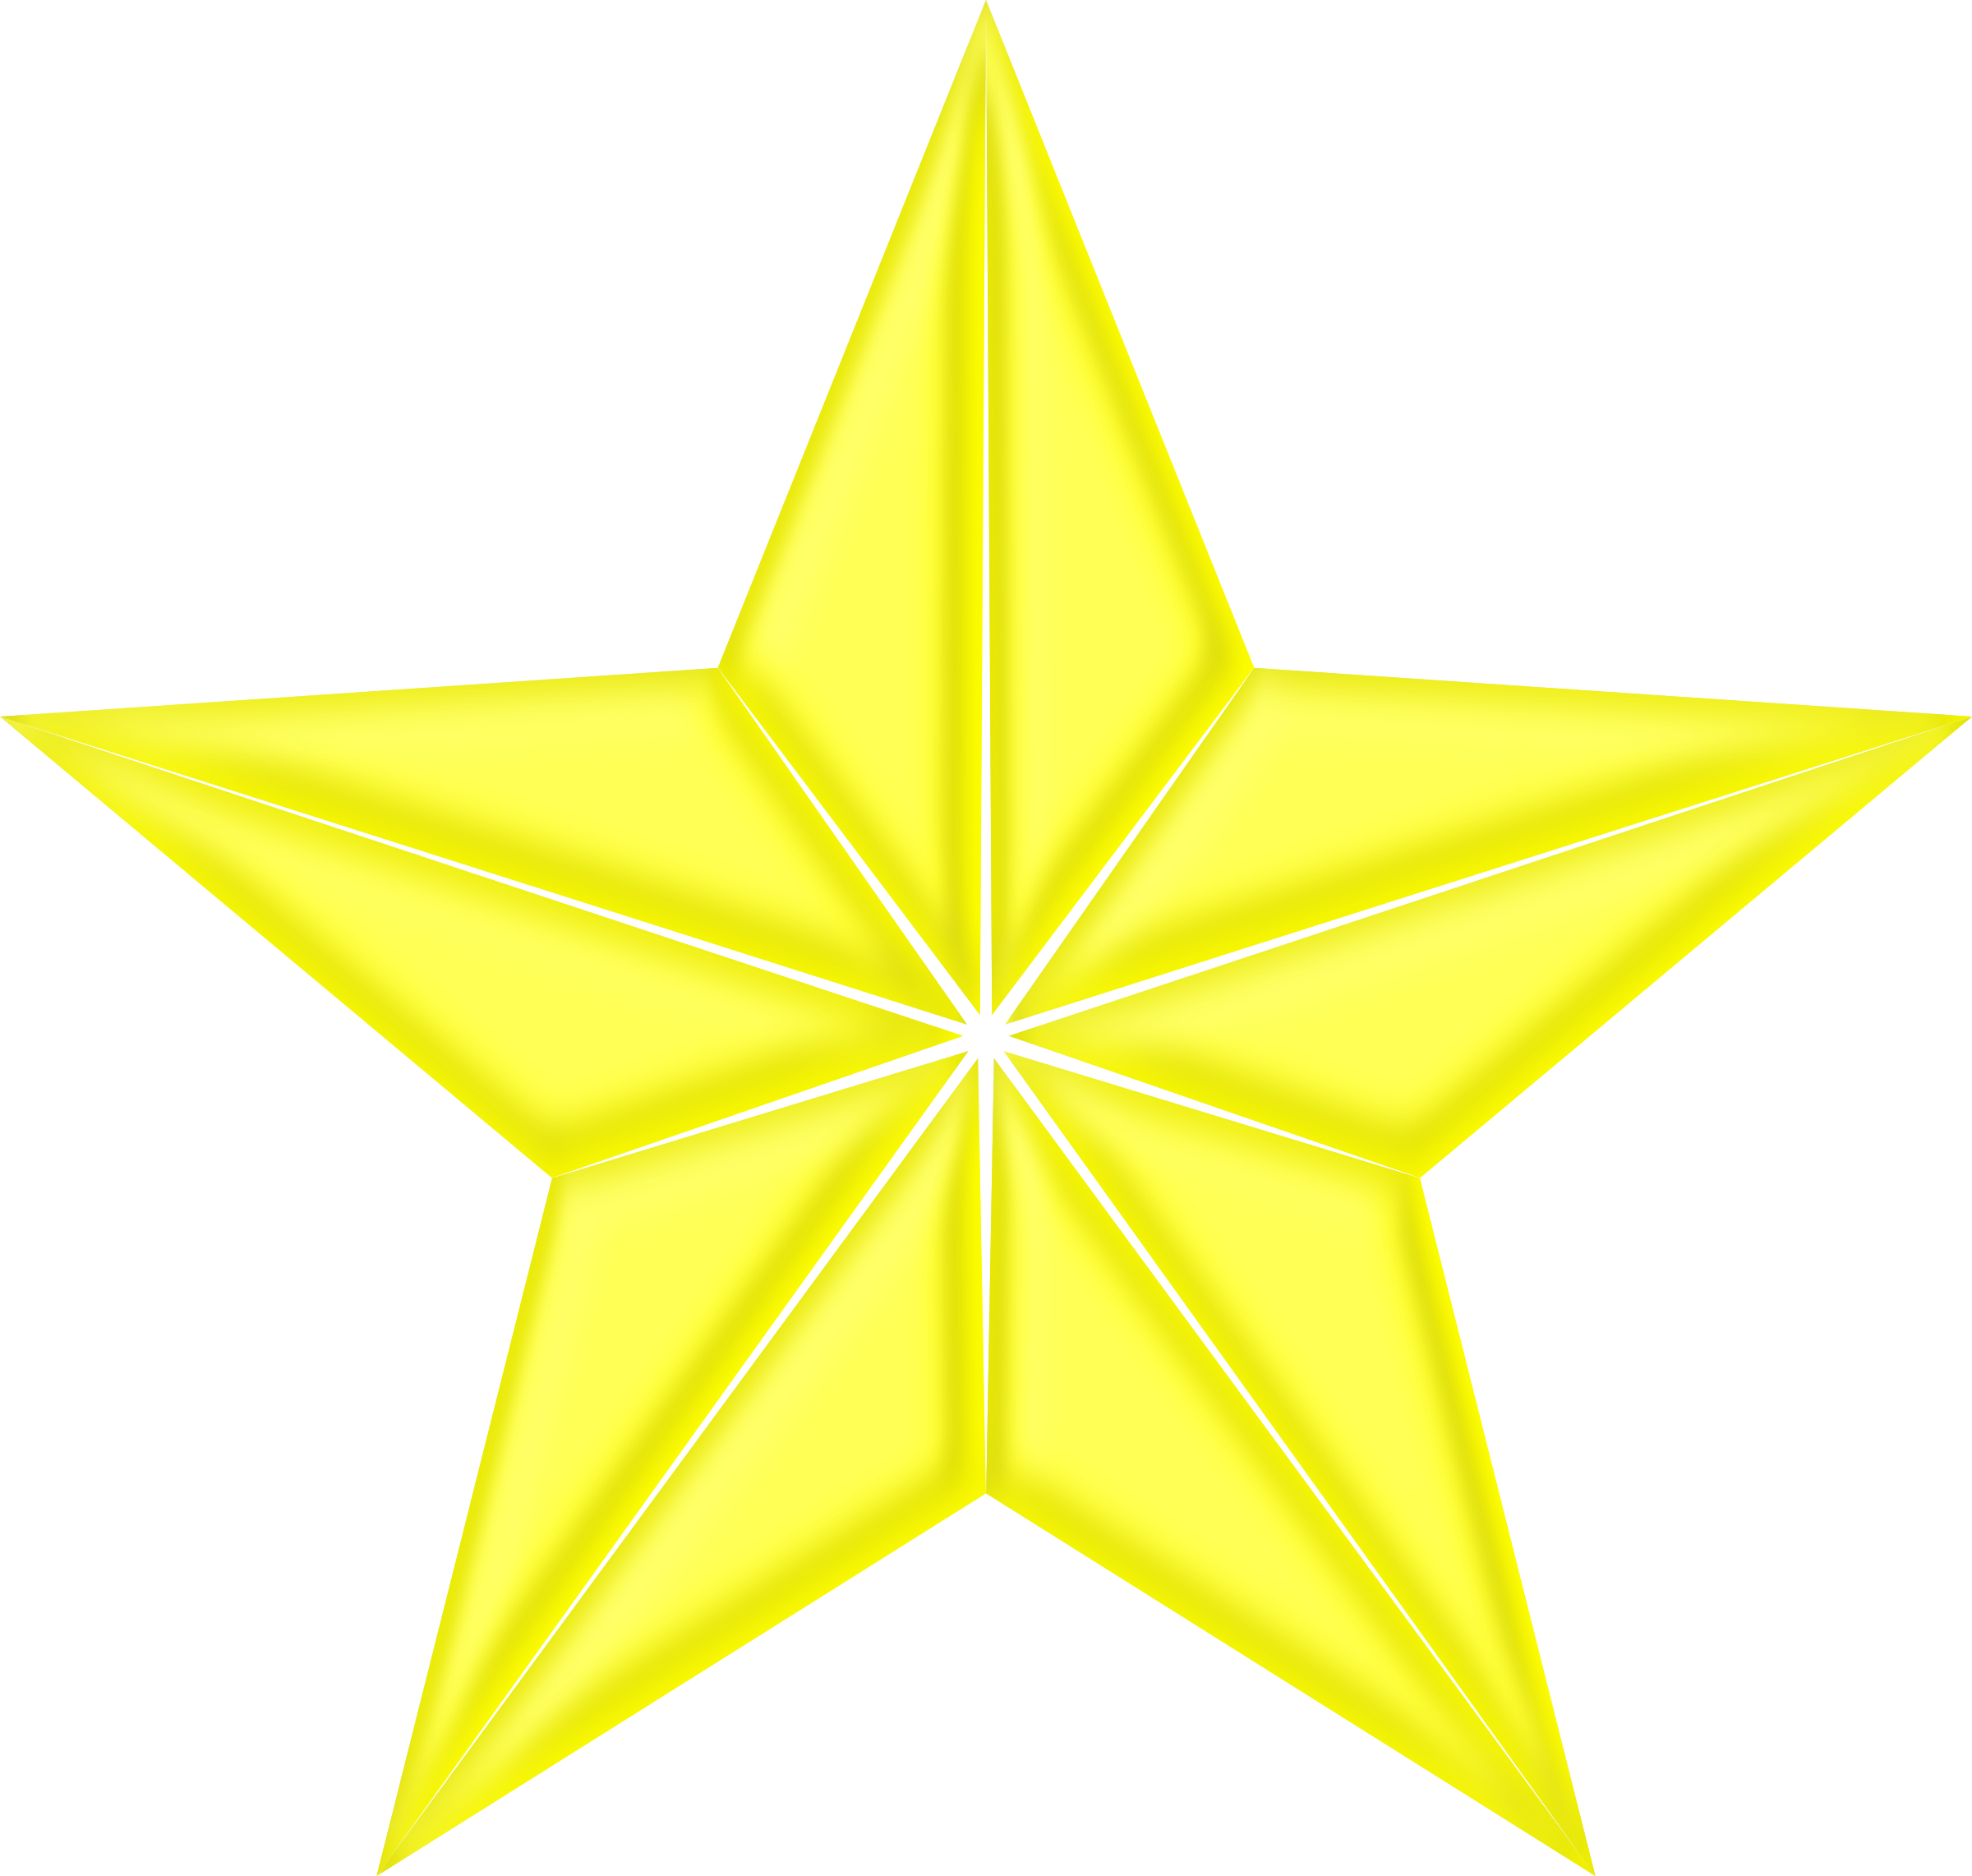 Star power clipart clipart royalty free stock Clipart - 3D segmented yellow star clipart royalty free stock